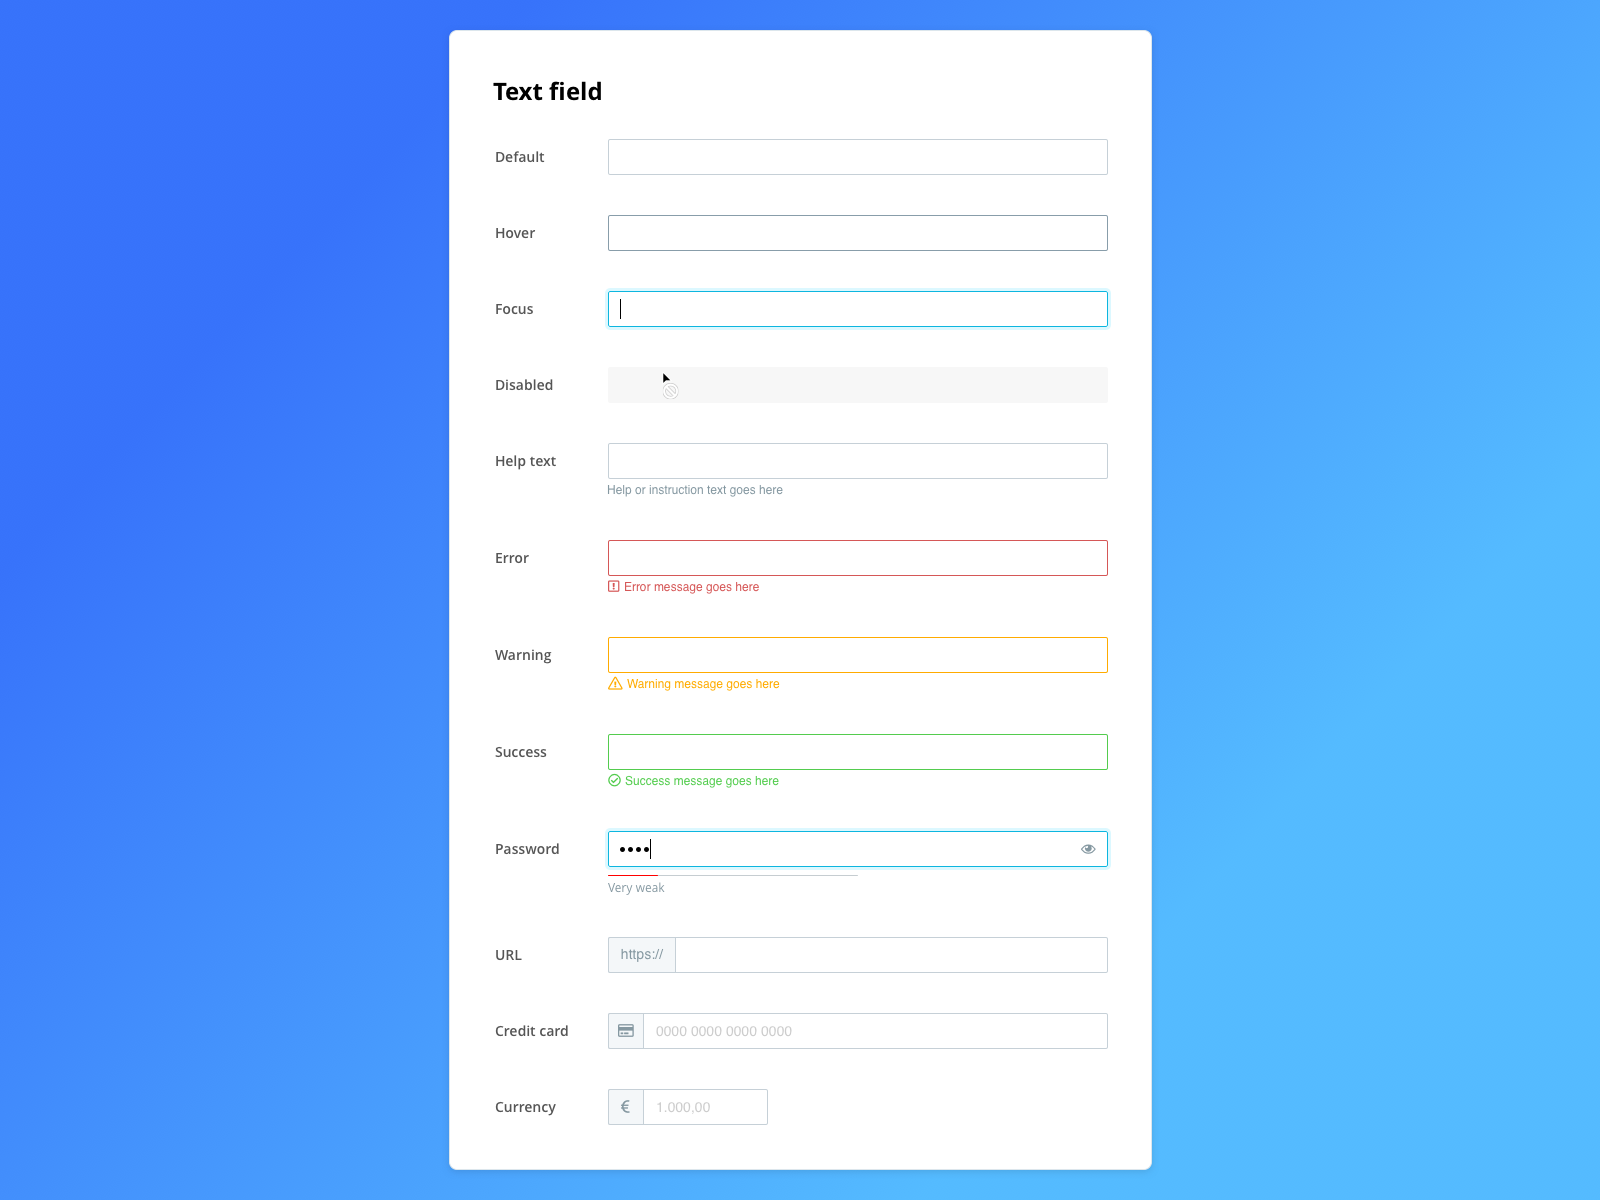 Dribbble text field